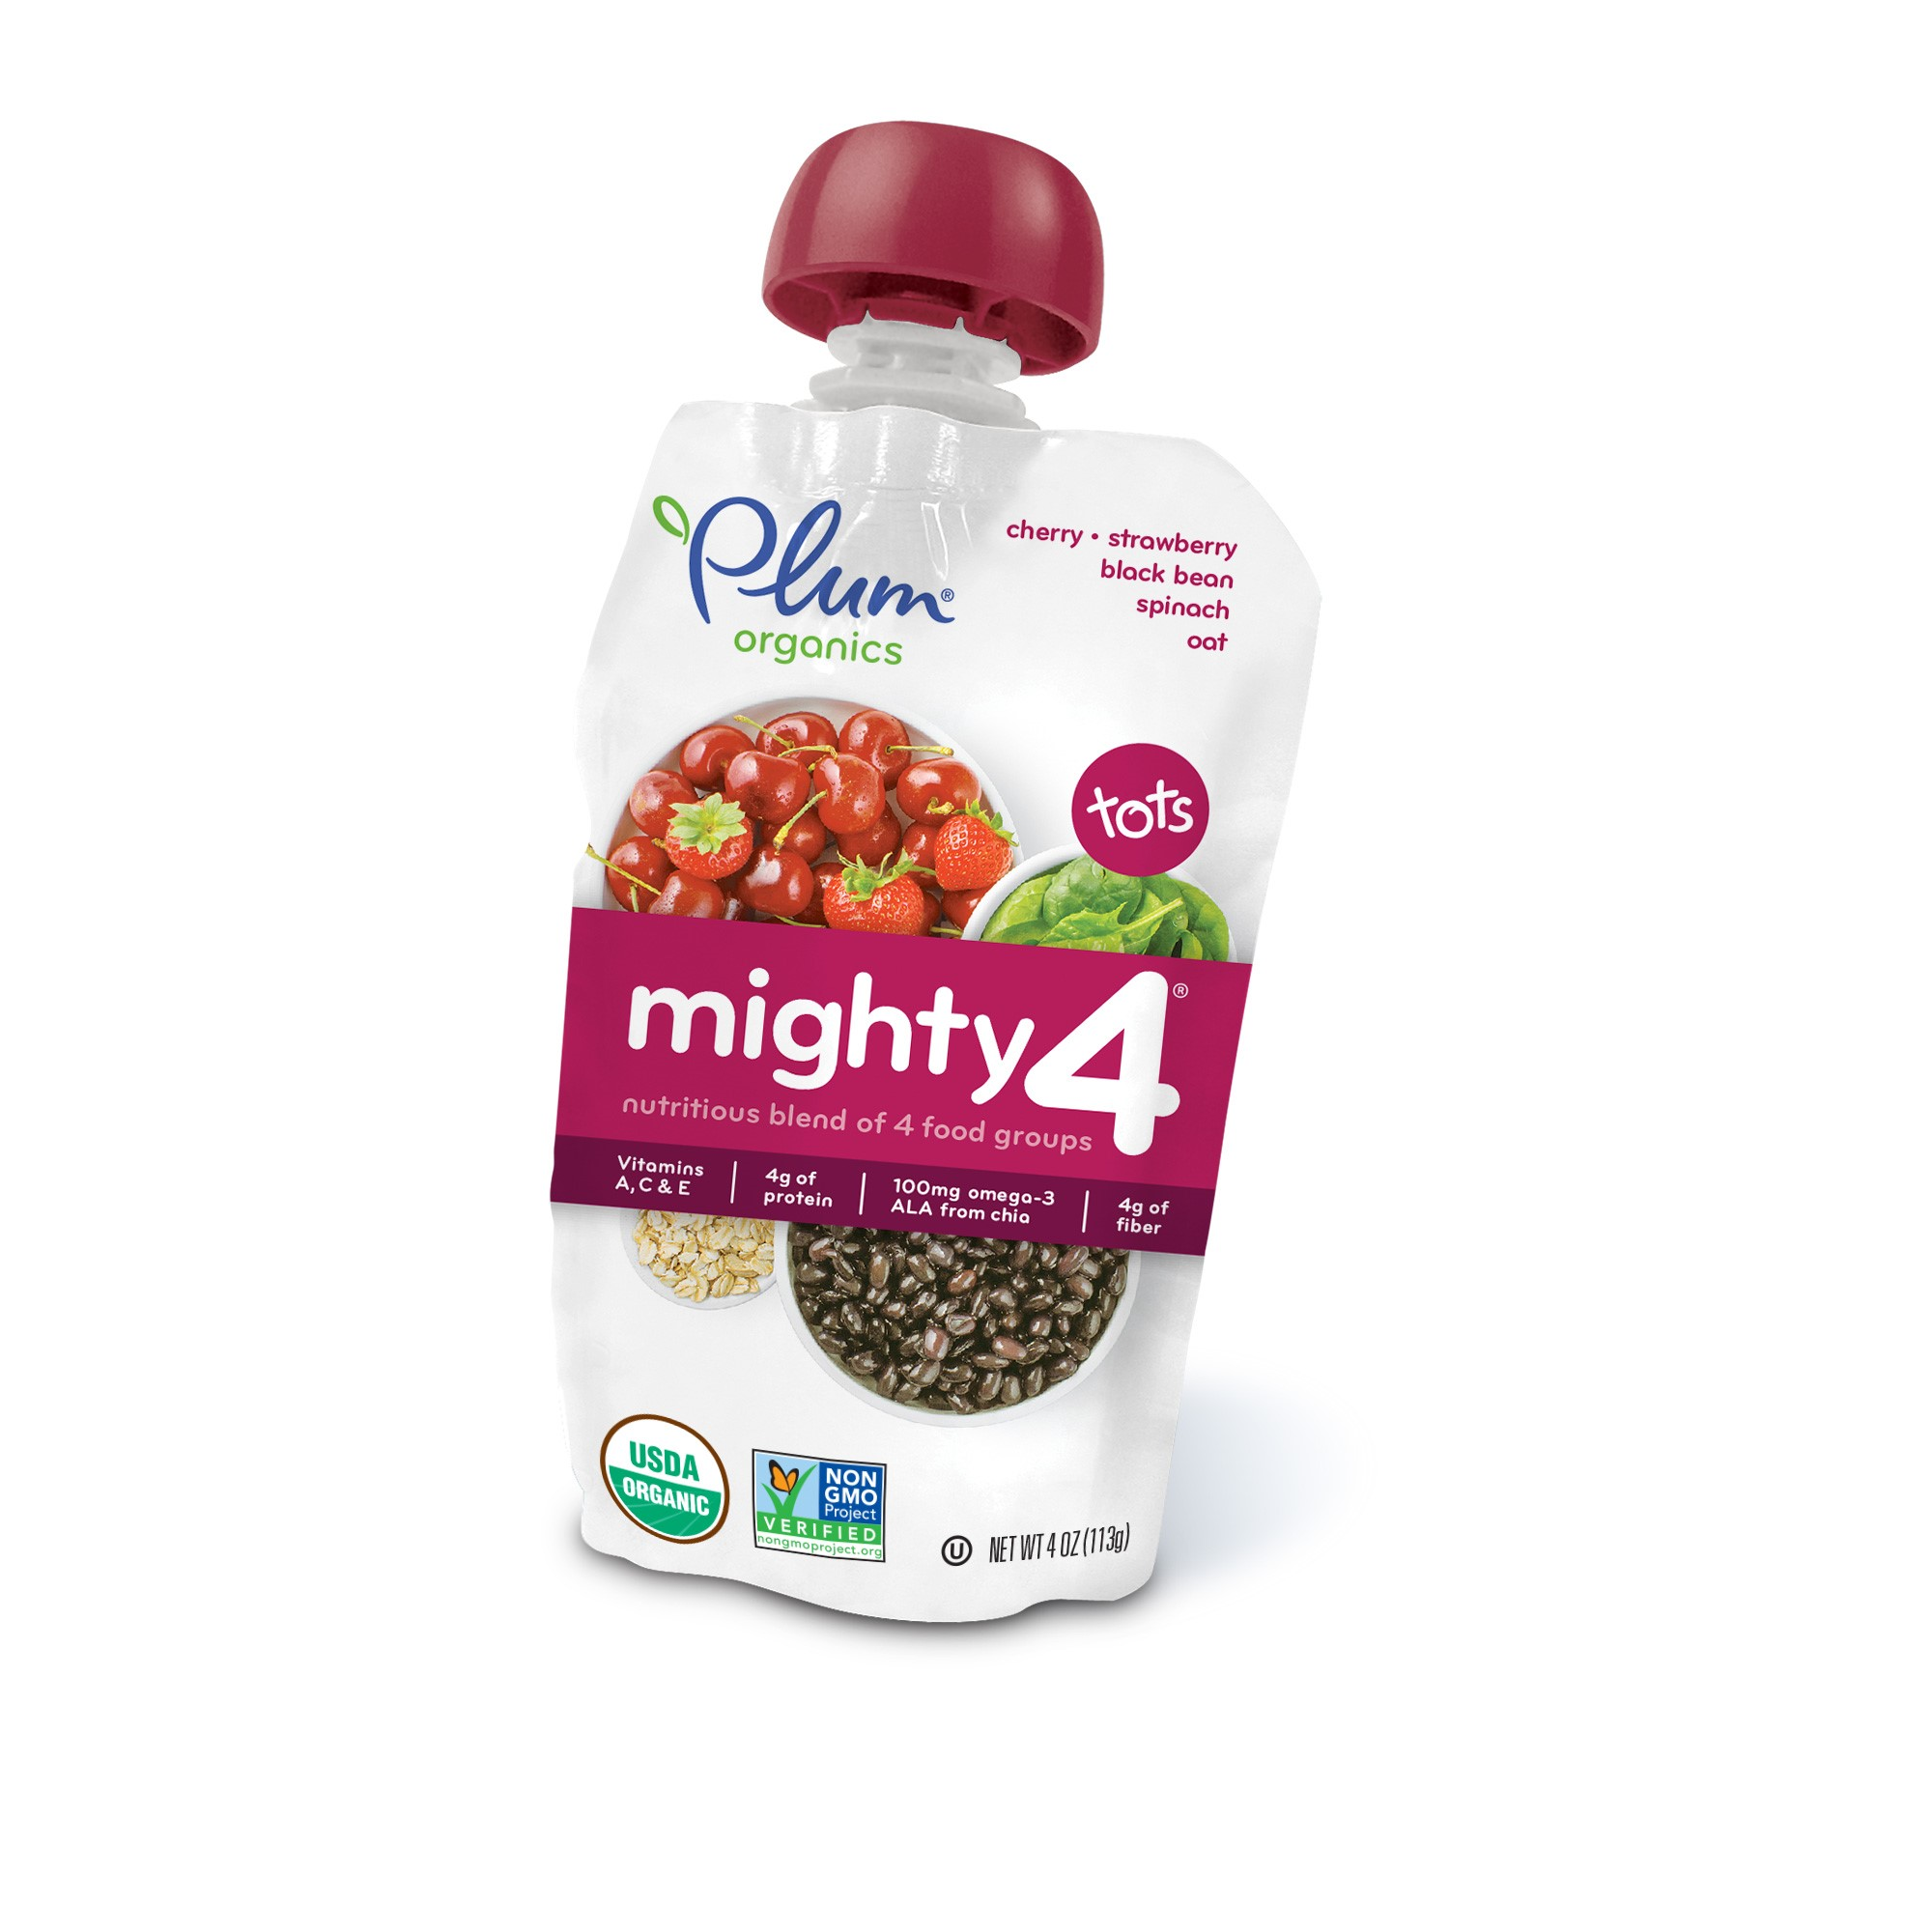 Plum Organics Mighty 4, Tots, Spinach, Cherry, Oats & Black Bean Strawberry, 4 Oz (6 Pack)